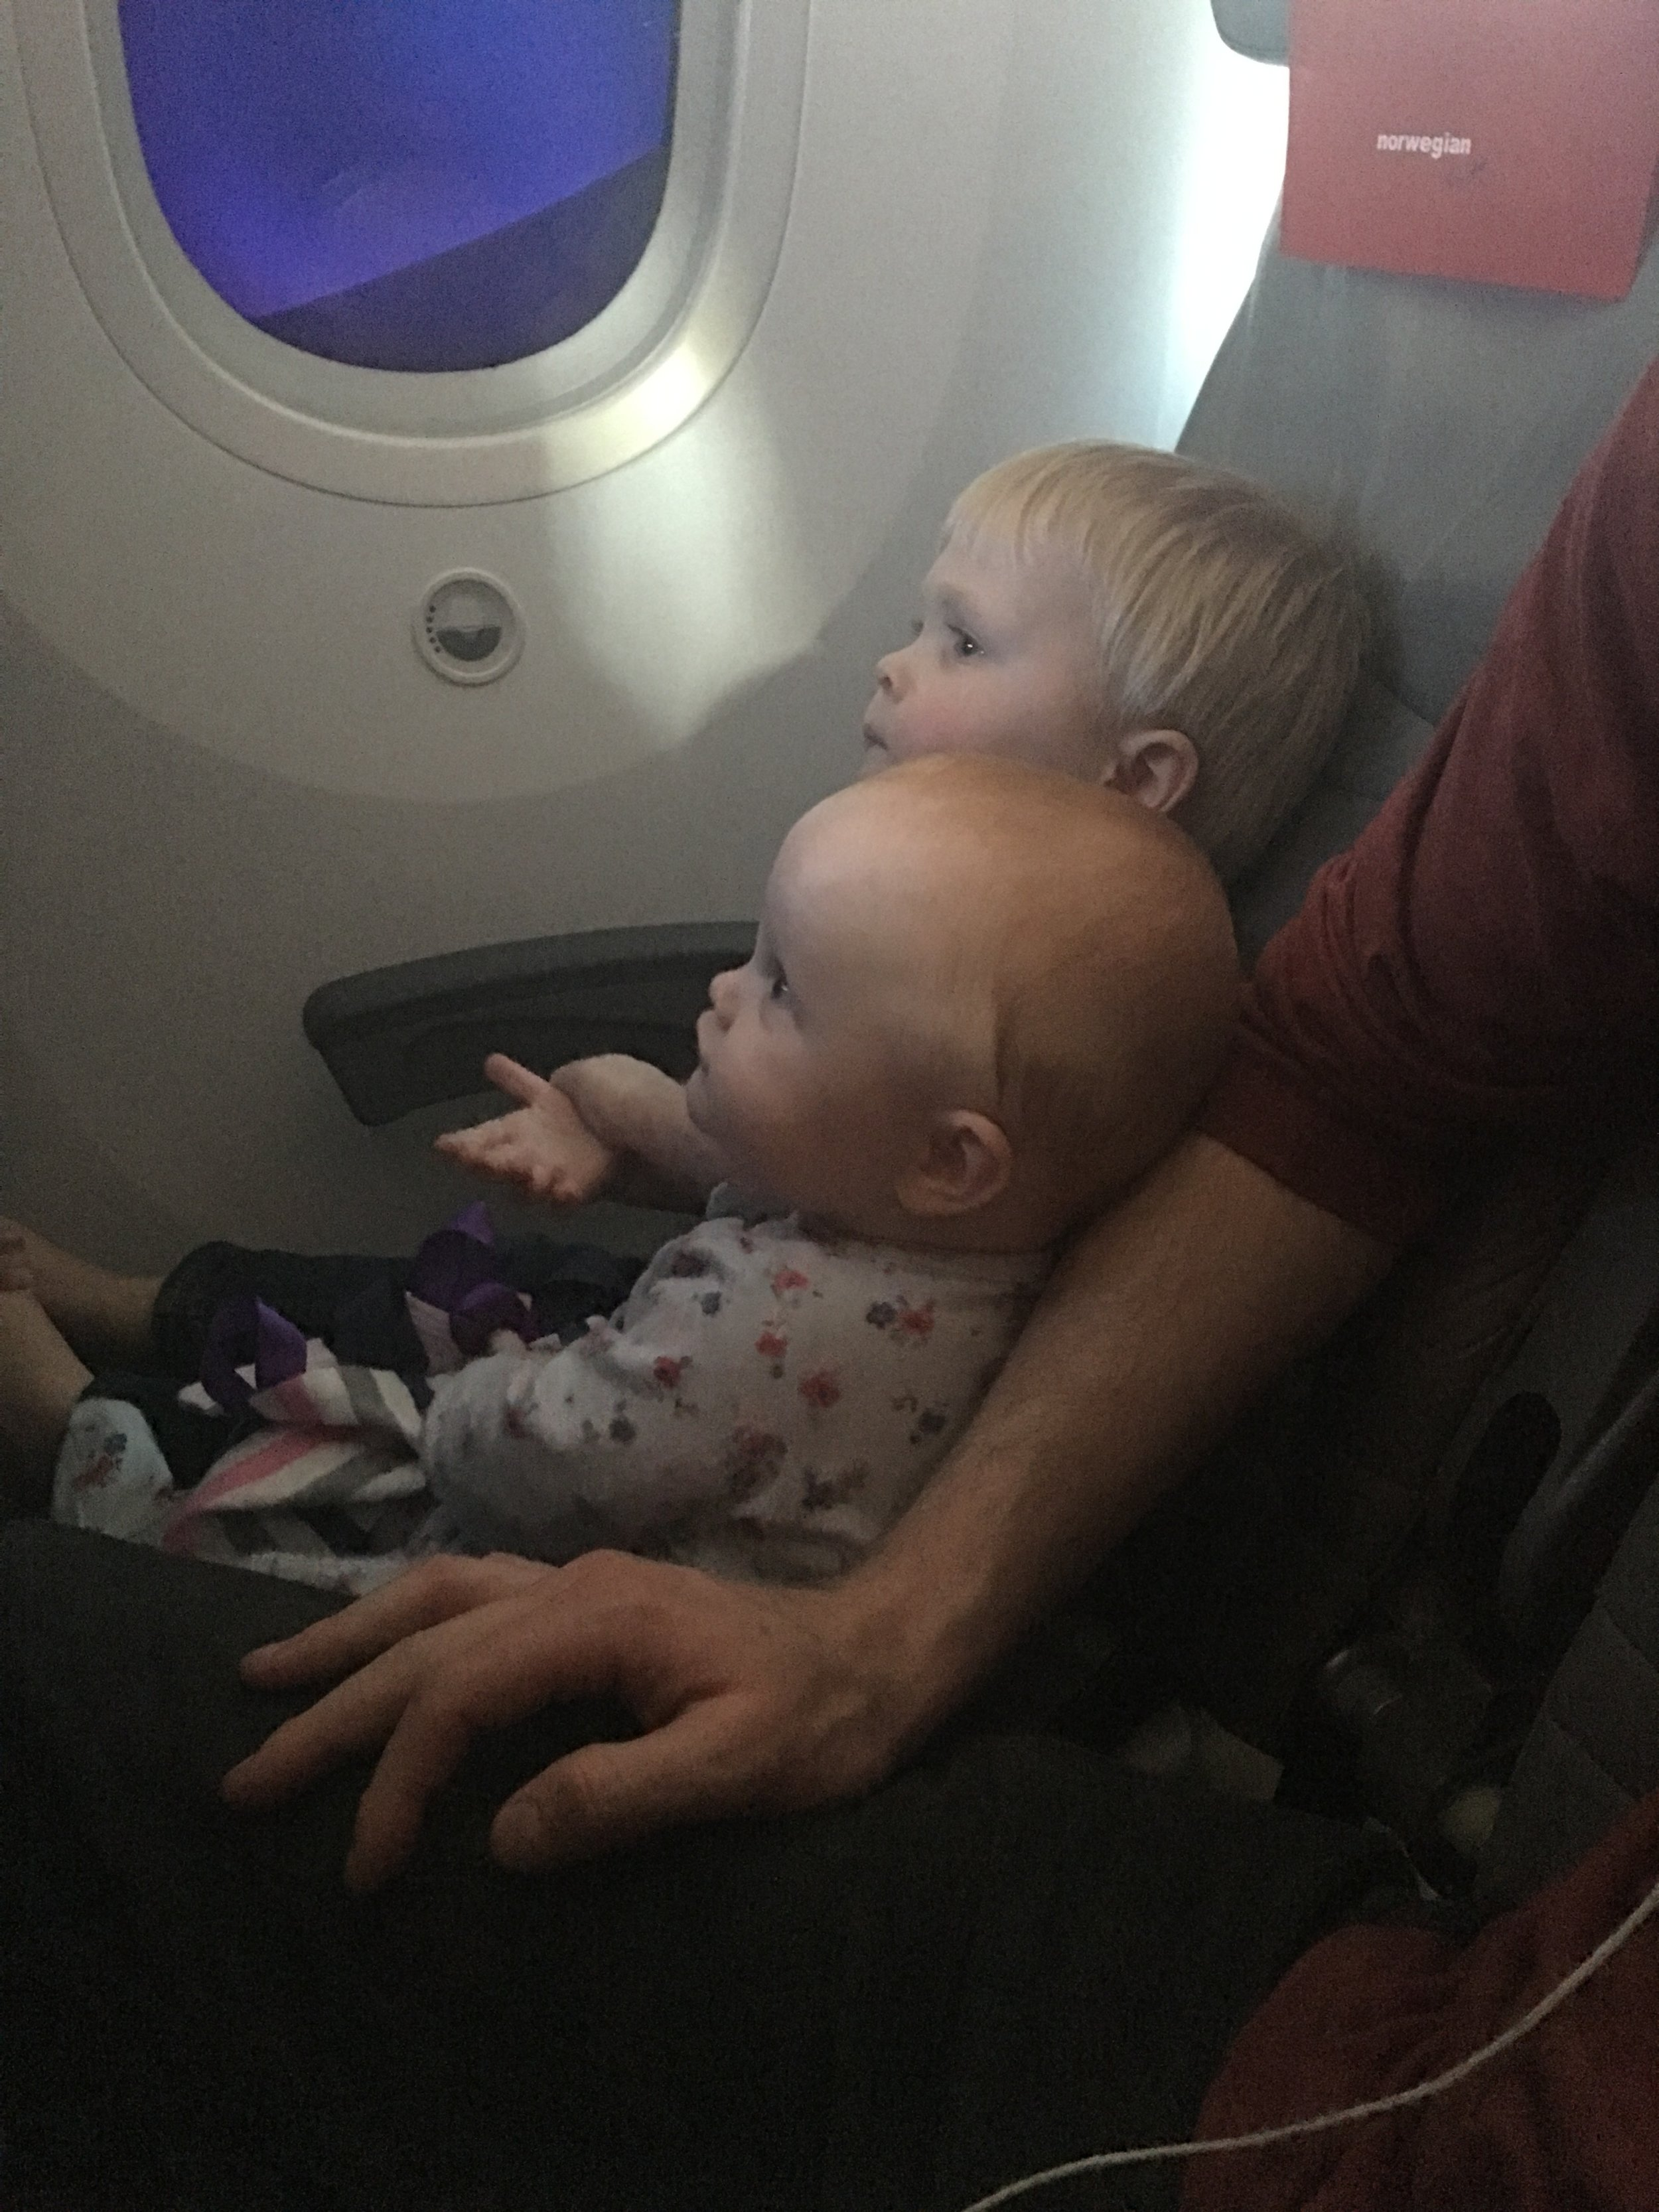 Best friends on the plane